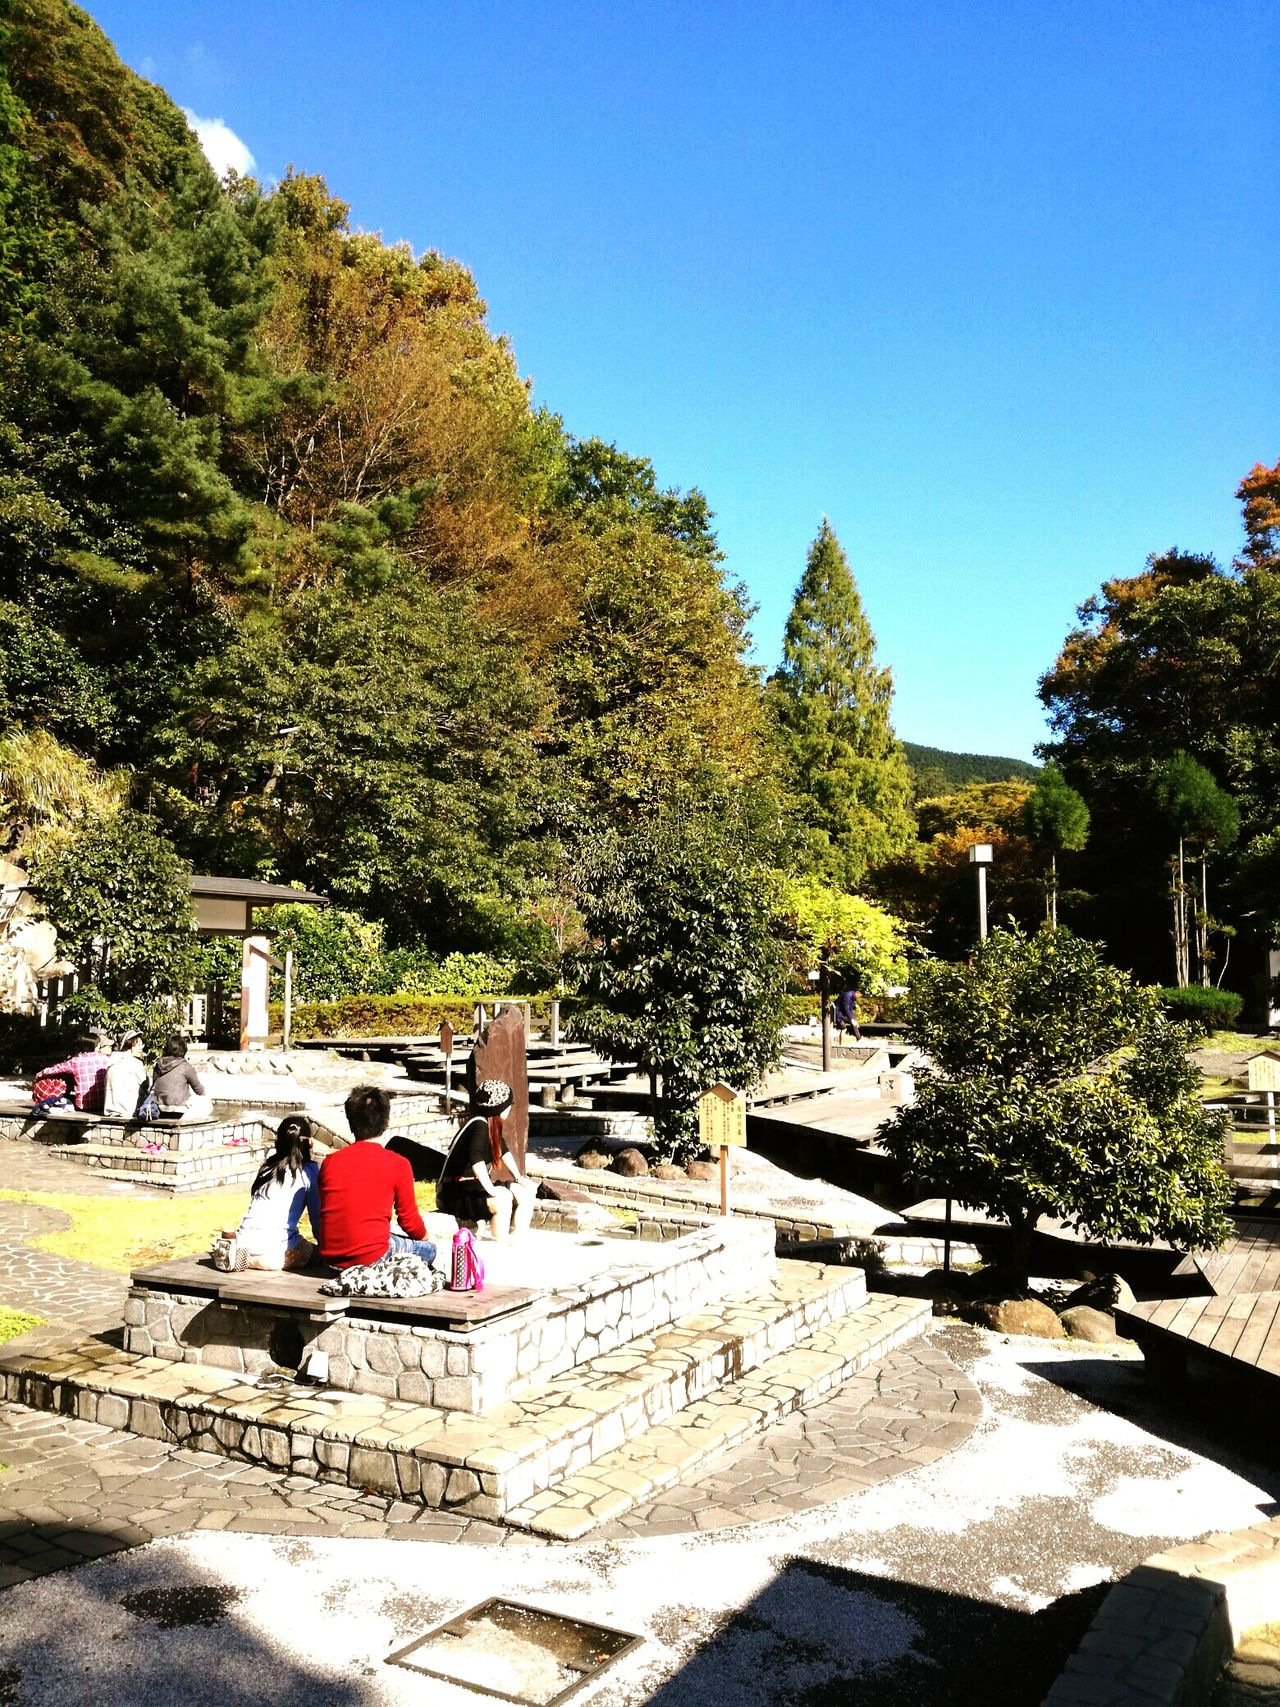 Tree Real People Sunlight Clear Sky Leisure Activity Water Outdoors Day Sky Slide - Play Equipment Swimming Pool Built Structure Growth Men Nature Architecture Beauty In Nature People Forest Travel Journey Beauty In Nature Yugawara Secret Place Onsen